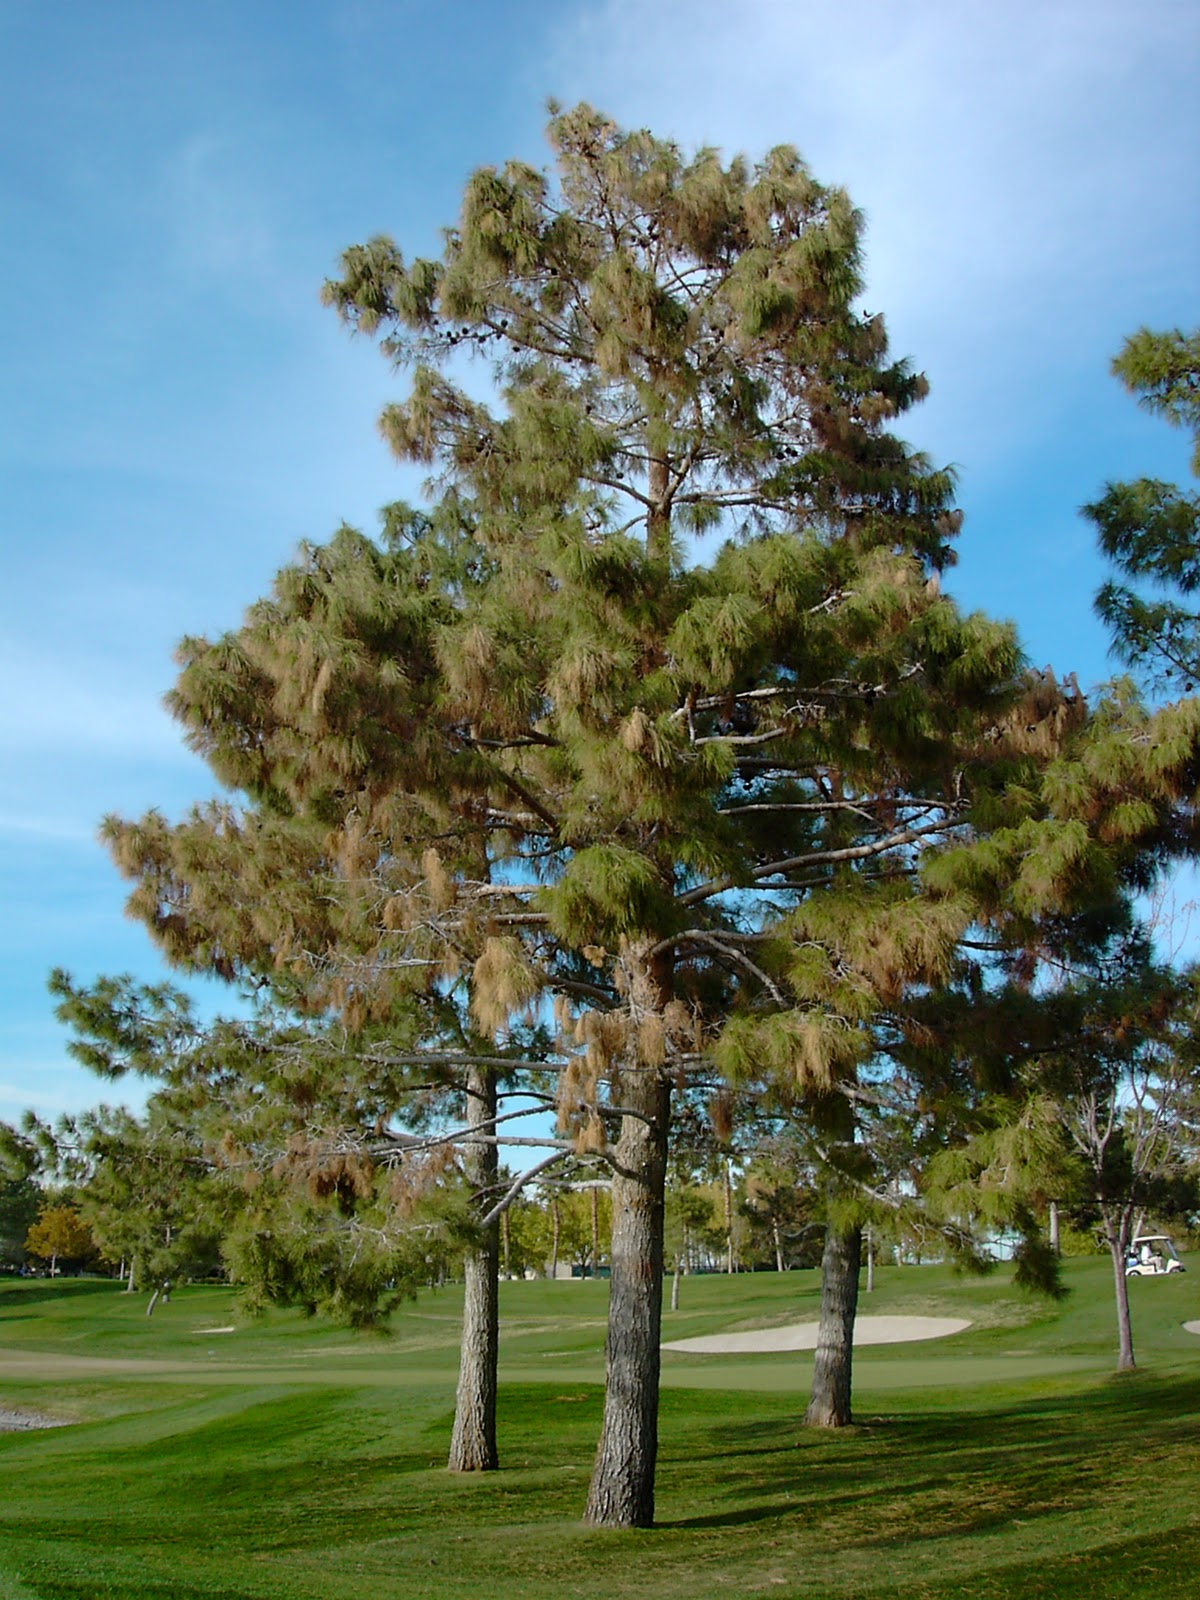 Xtremehorticulture of the Desert: Why Is My Pine Tree So ...